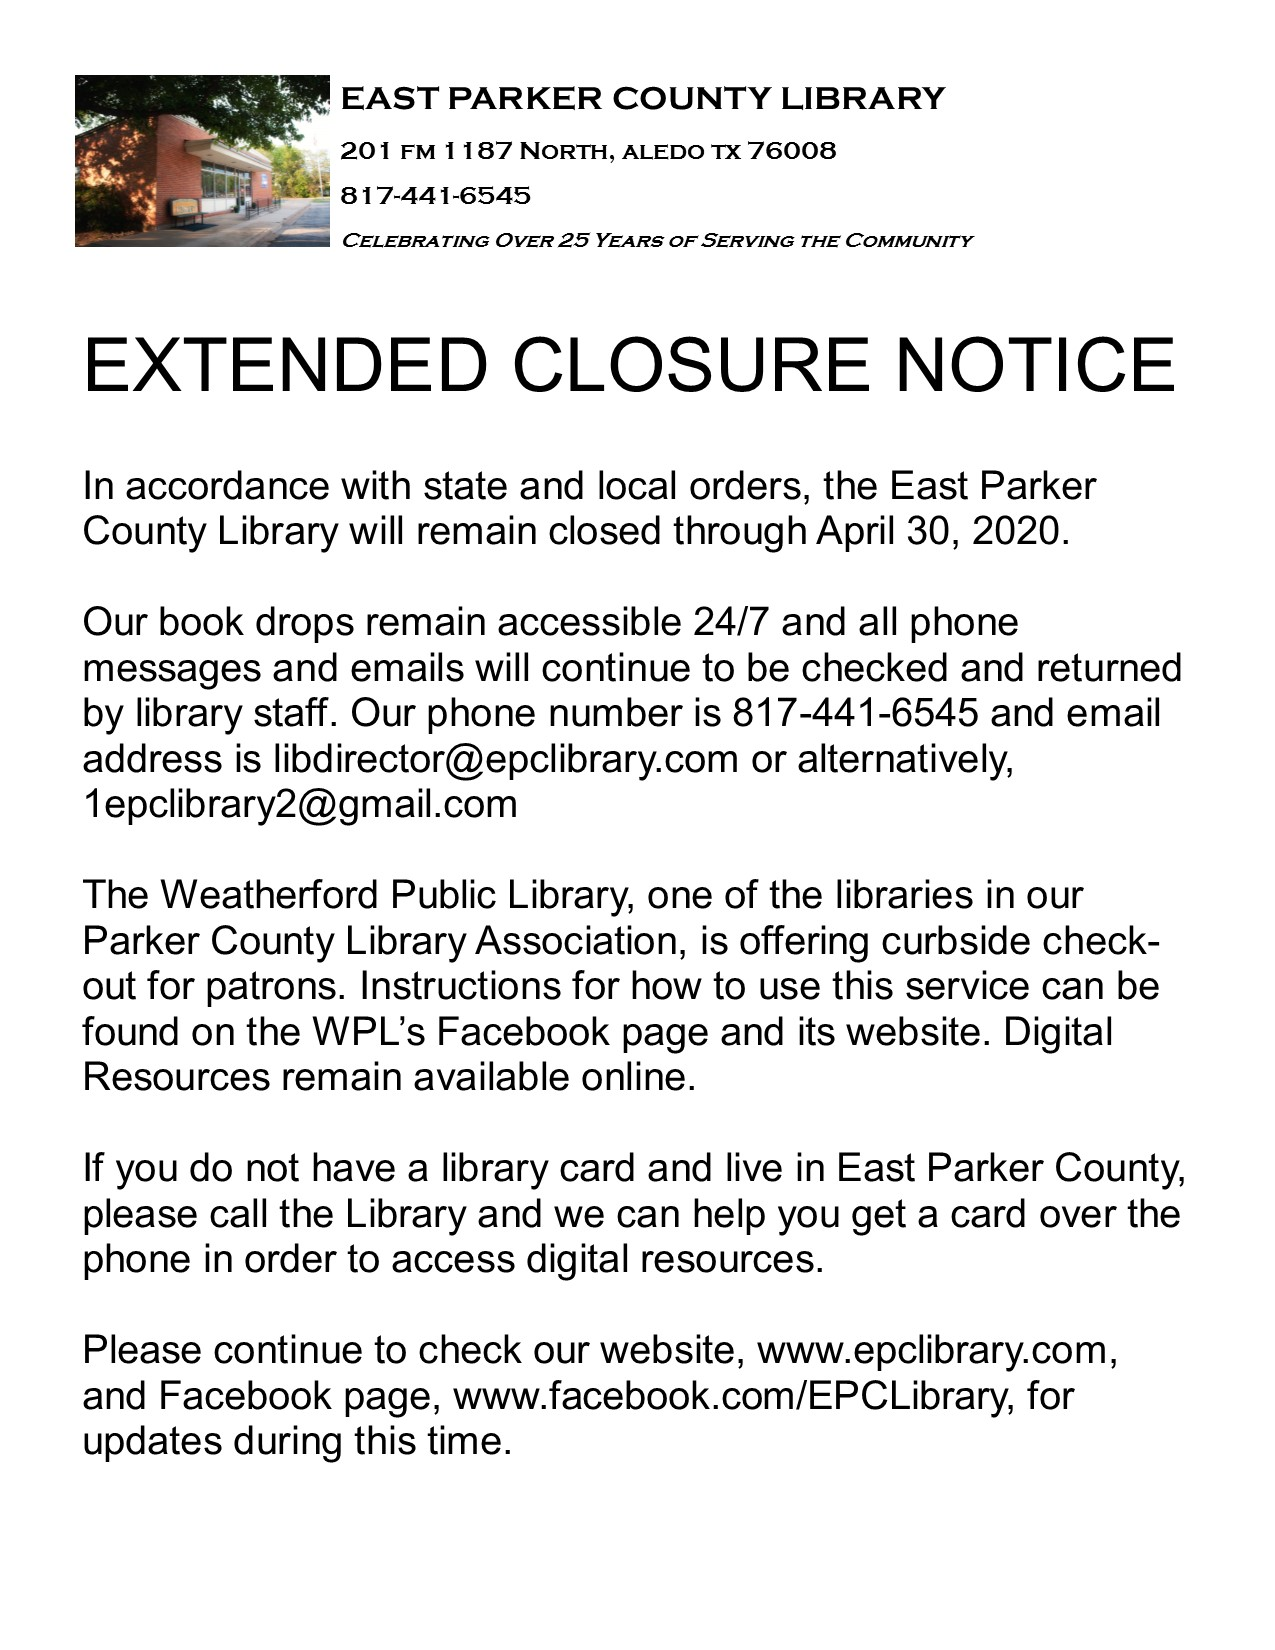 epcl extended closure notification.jpg